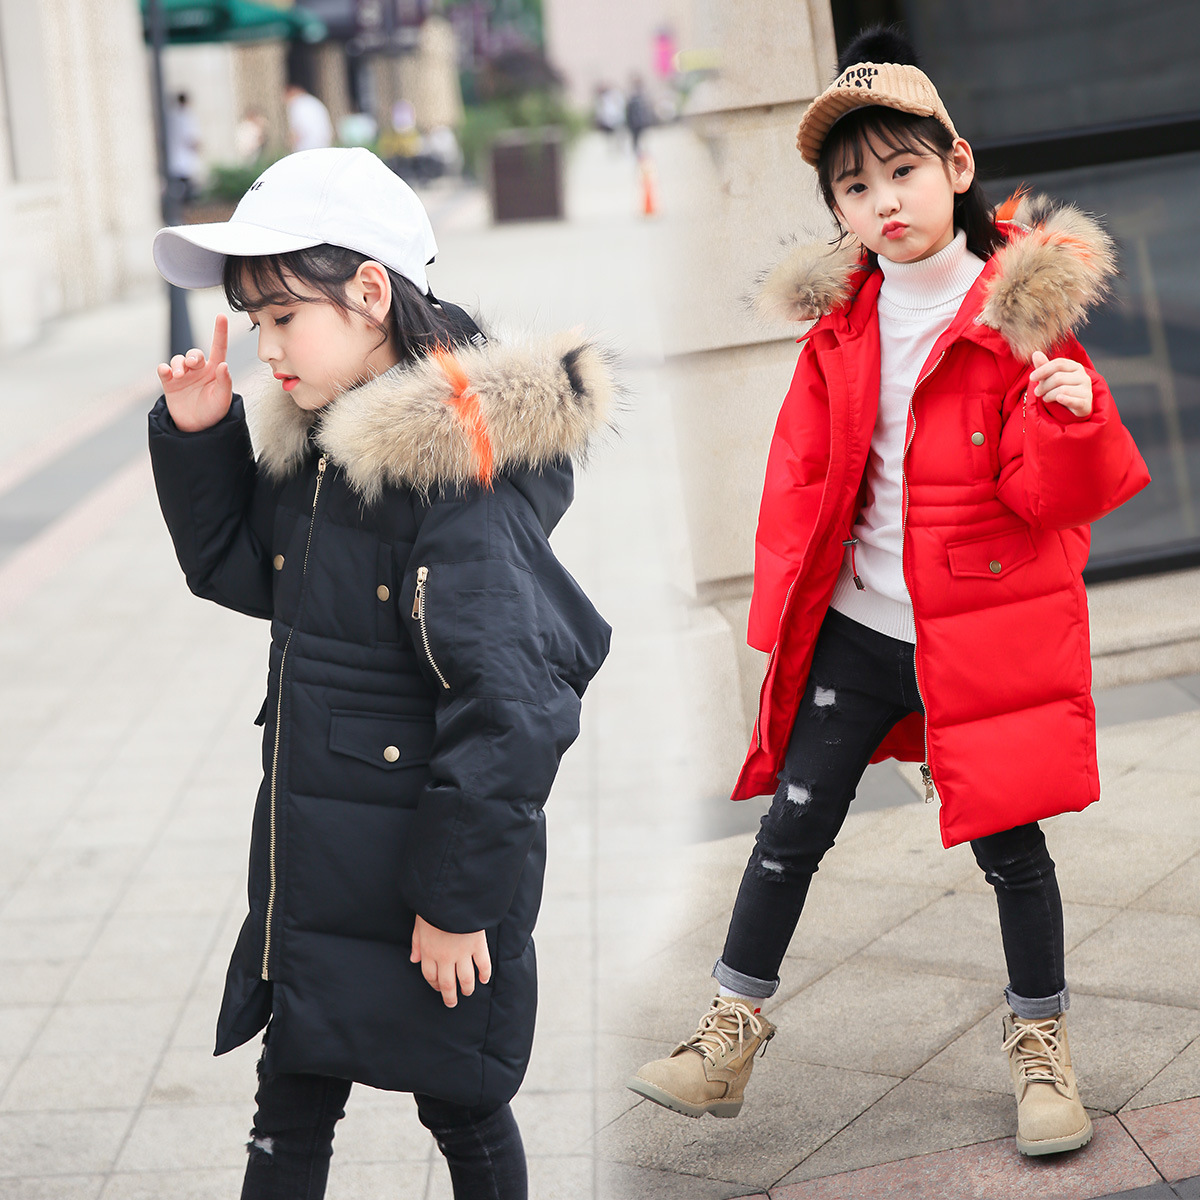 2018 Thick Warm Fur Hooded Girls Winter Coat Zipper Solid Slim Child Winter Jacket For Teen Girls Kids Cotton Parka Down JW0428 women winter coat jacket 2017 hooded fur collar plus size warm down cotton coat thicke solid color cotton outerwear parka wa892